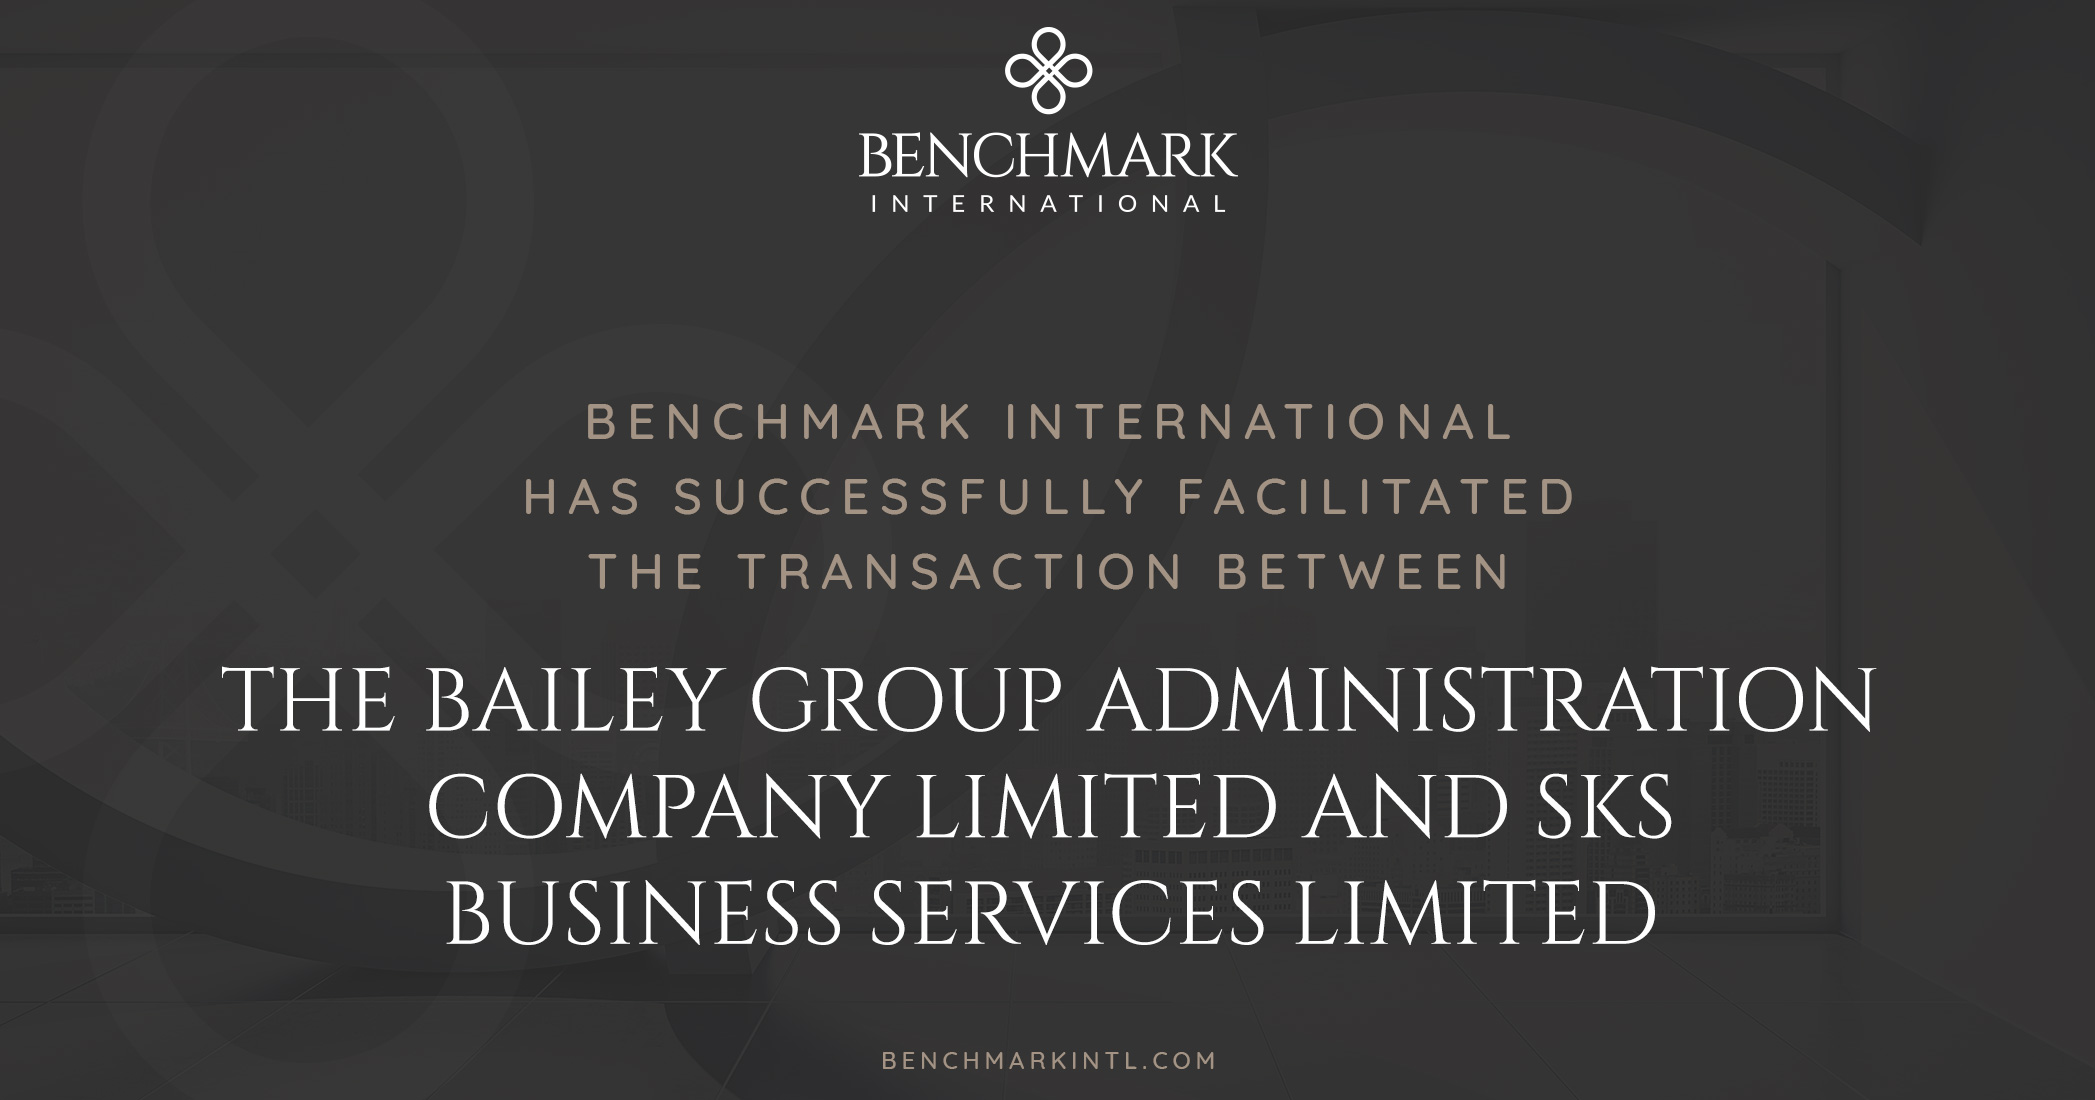 Benchmark International Successfully Facilitated the Transaction Between The Bailey Group Administration Company Limited and SKS Business Services Limited